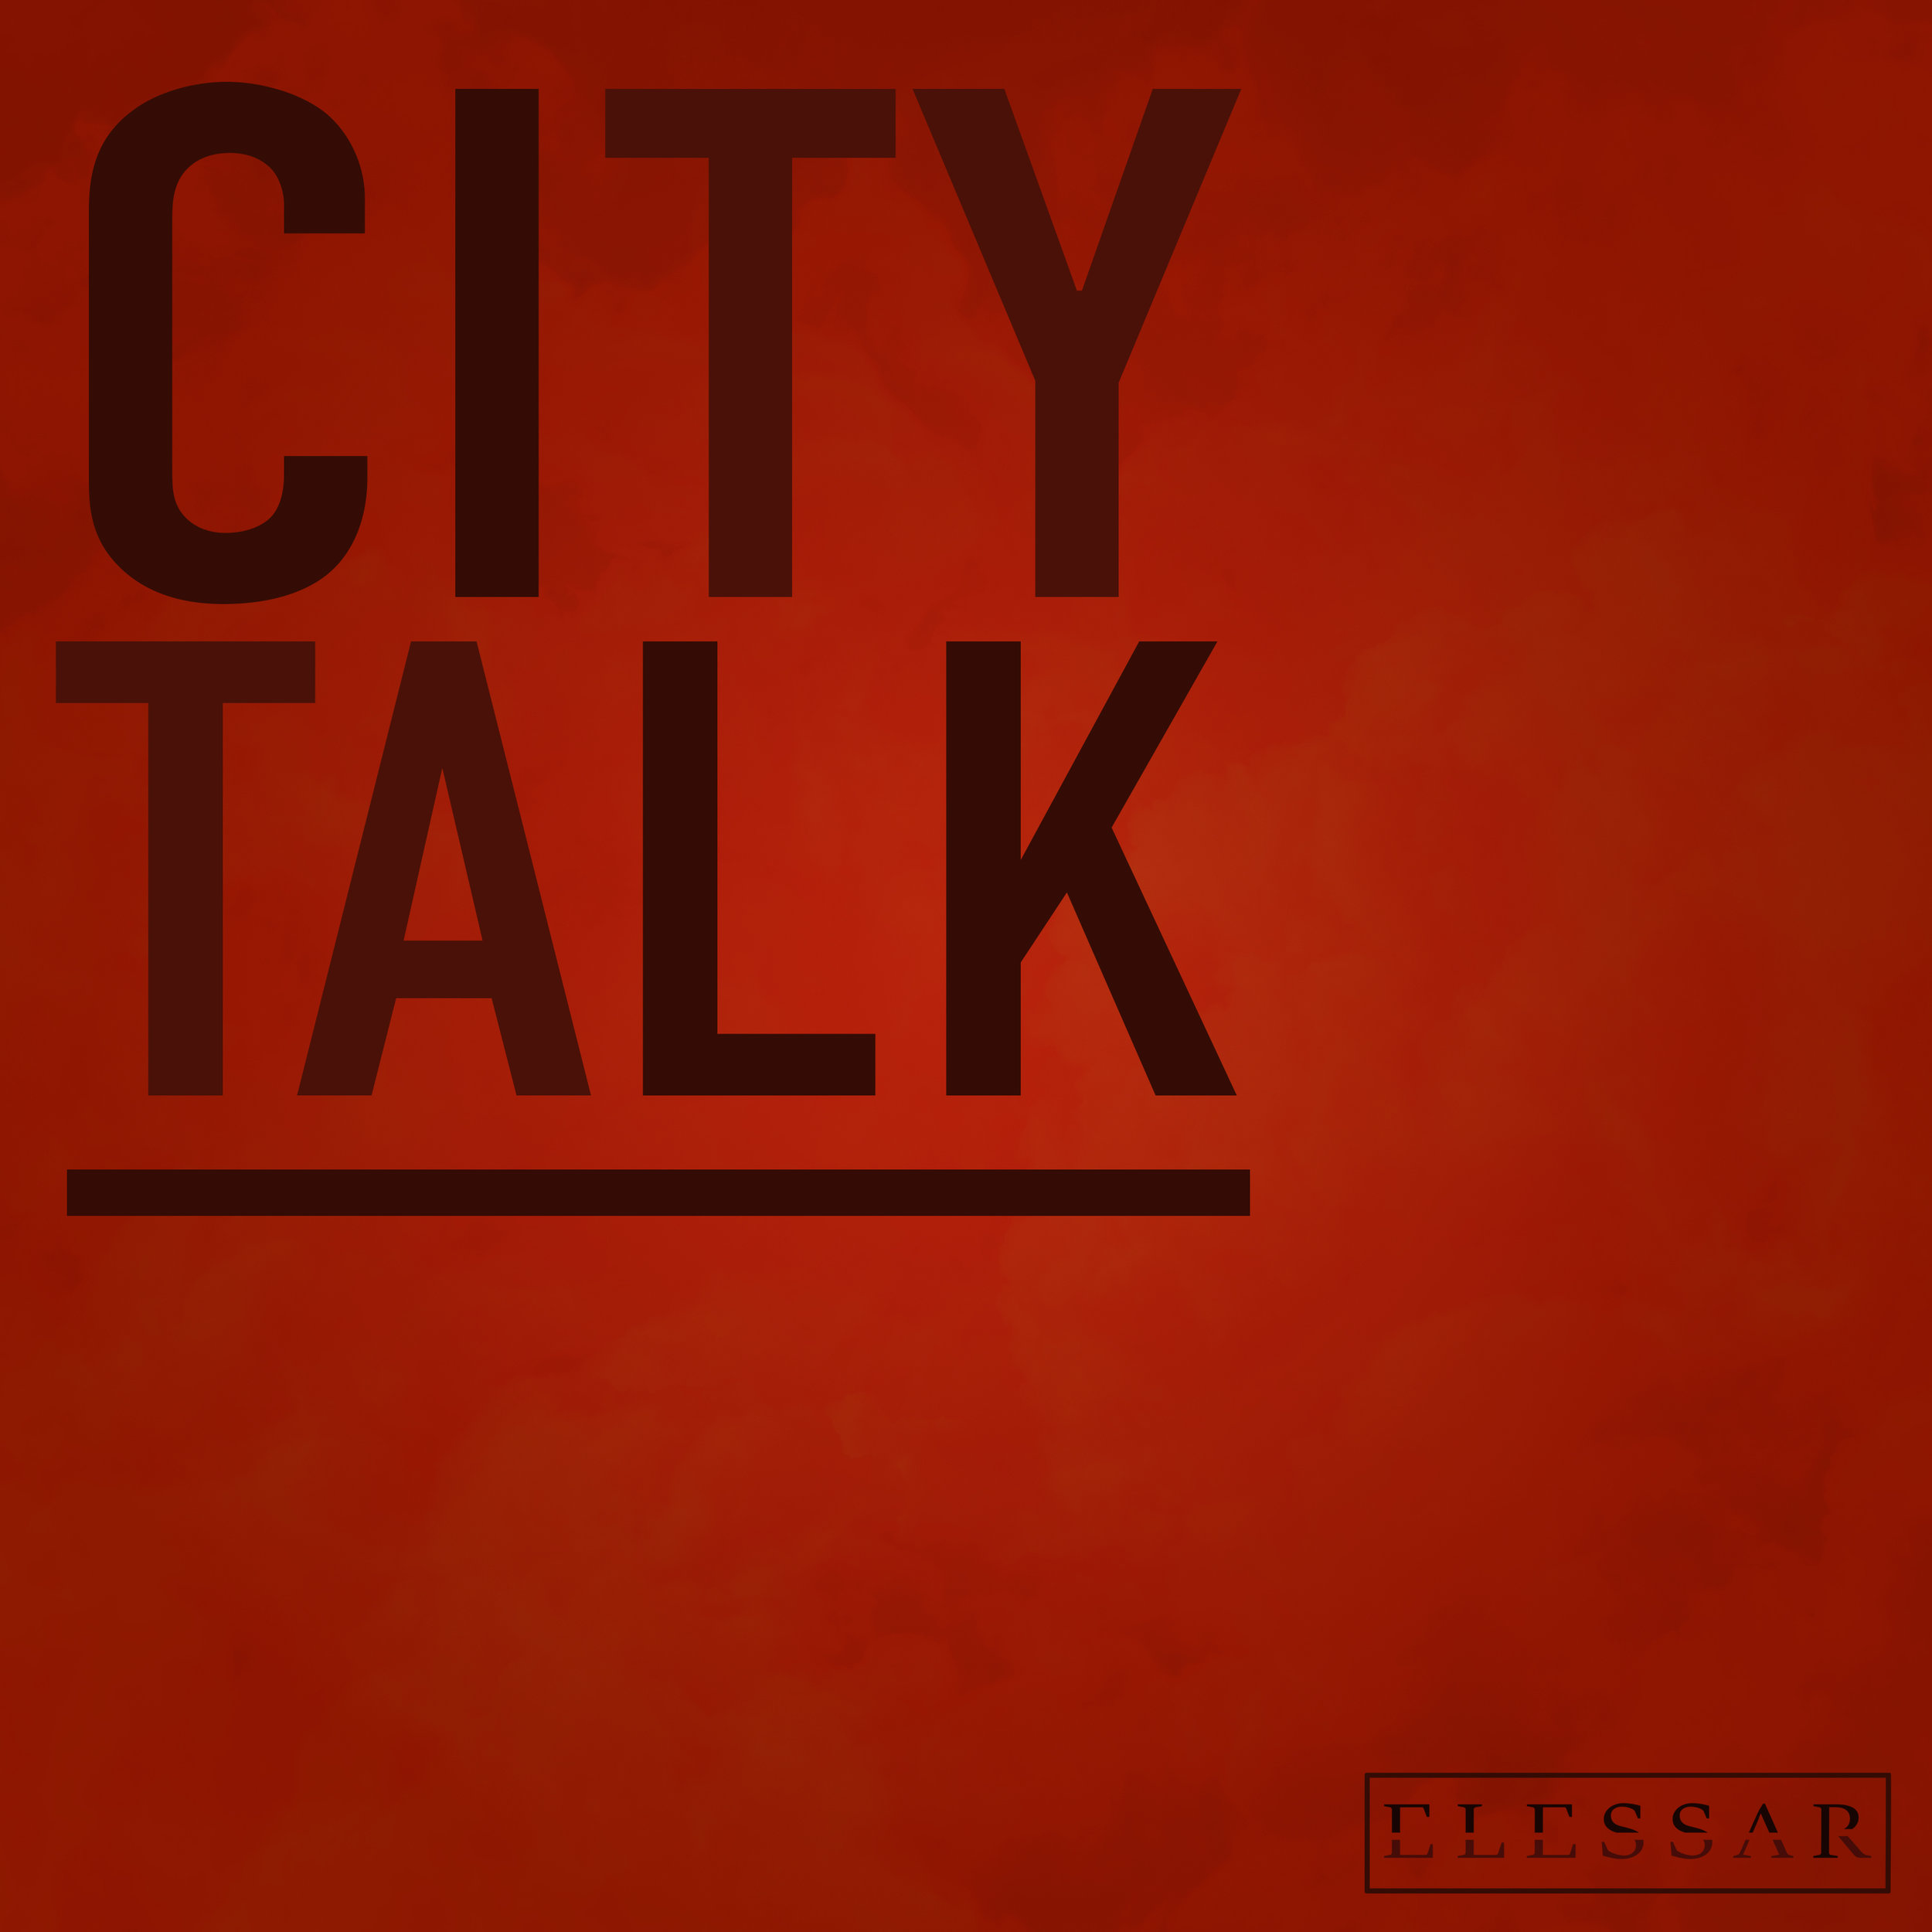 CITY TALK COVER.jpg